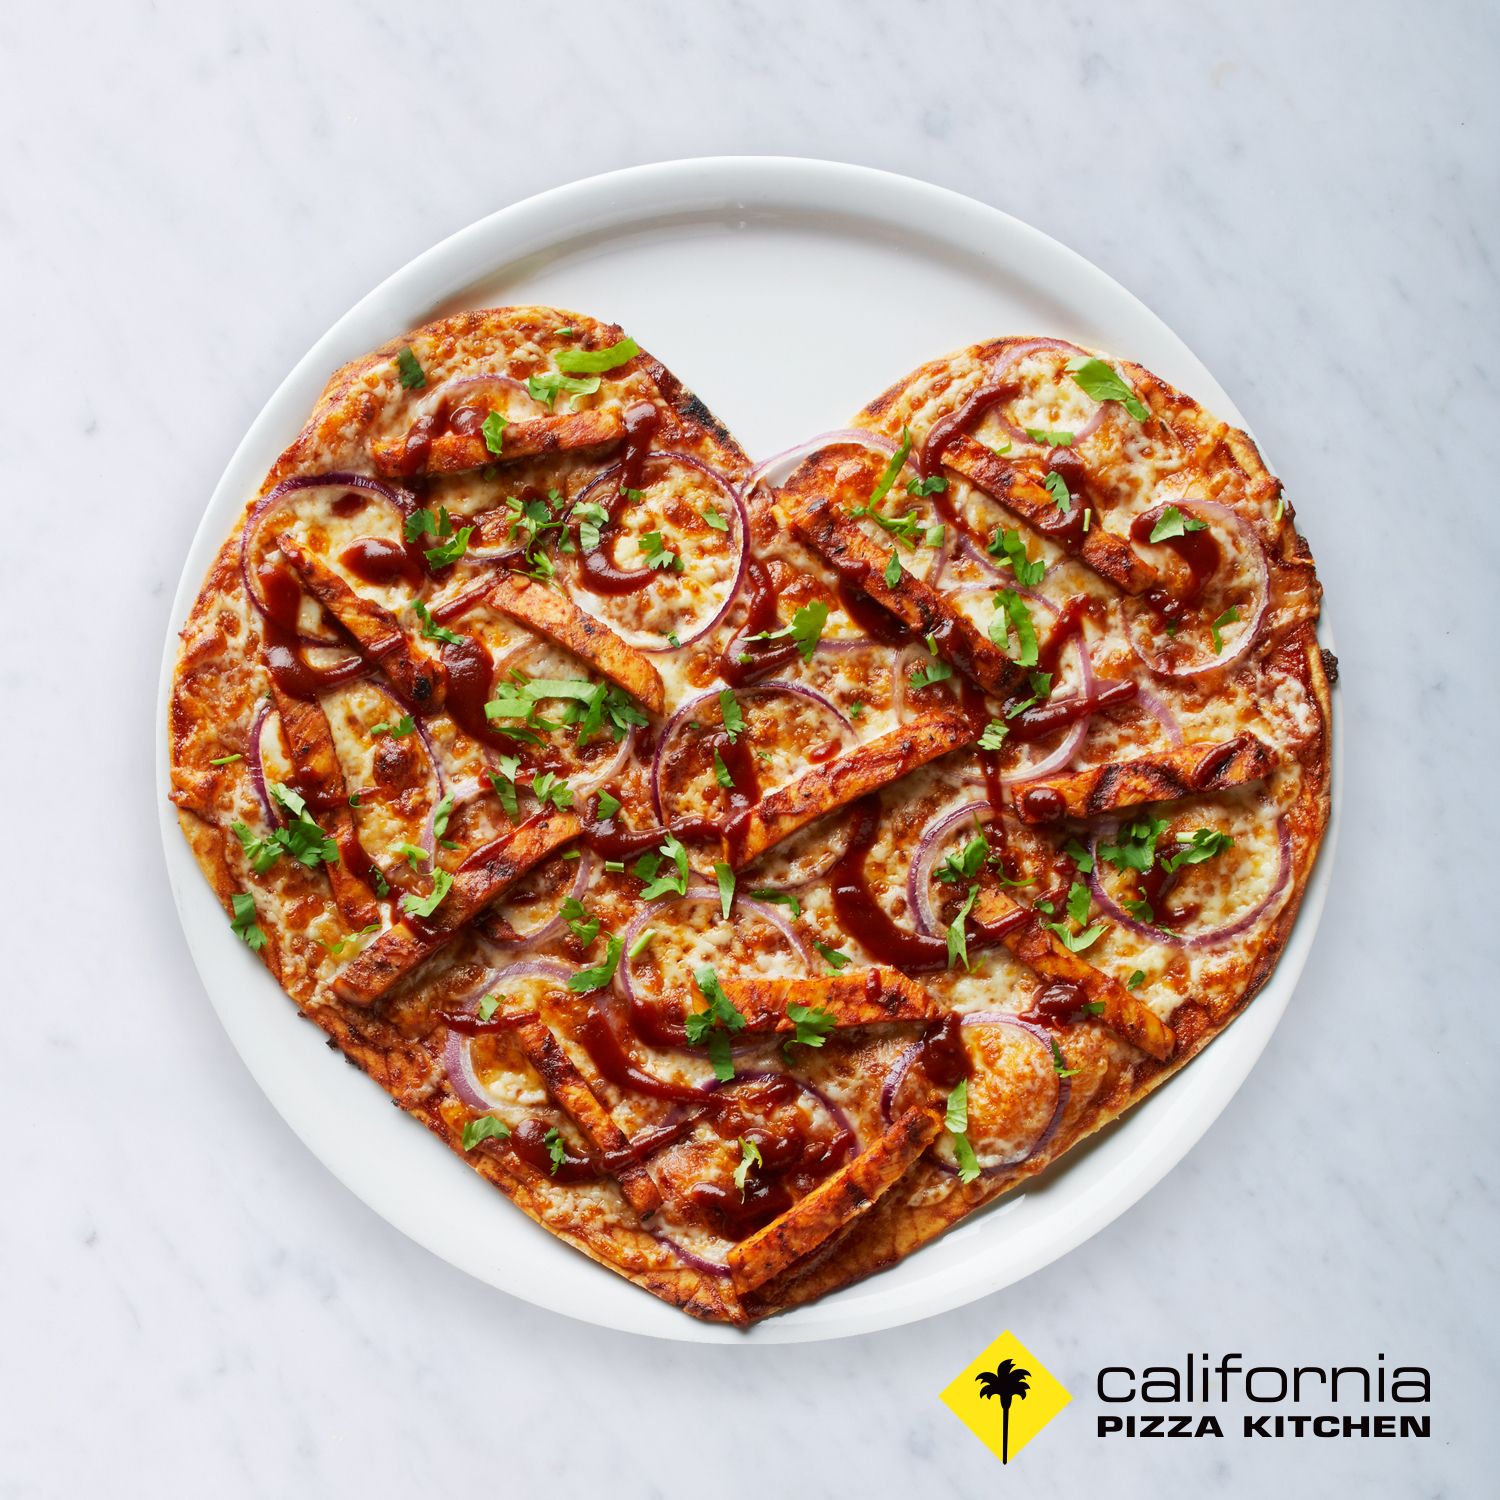 California Pizza Kitchen Dishes Out The Love This Valentine S Day With Heart Shaped Pizzas A Sweet Deal For Two Menu Offer And More Business Wire